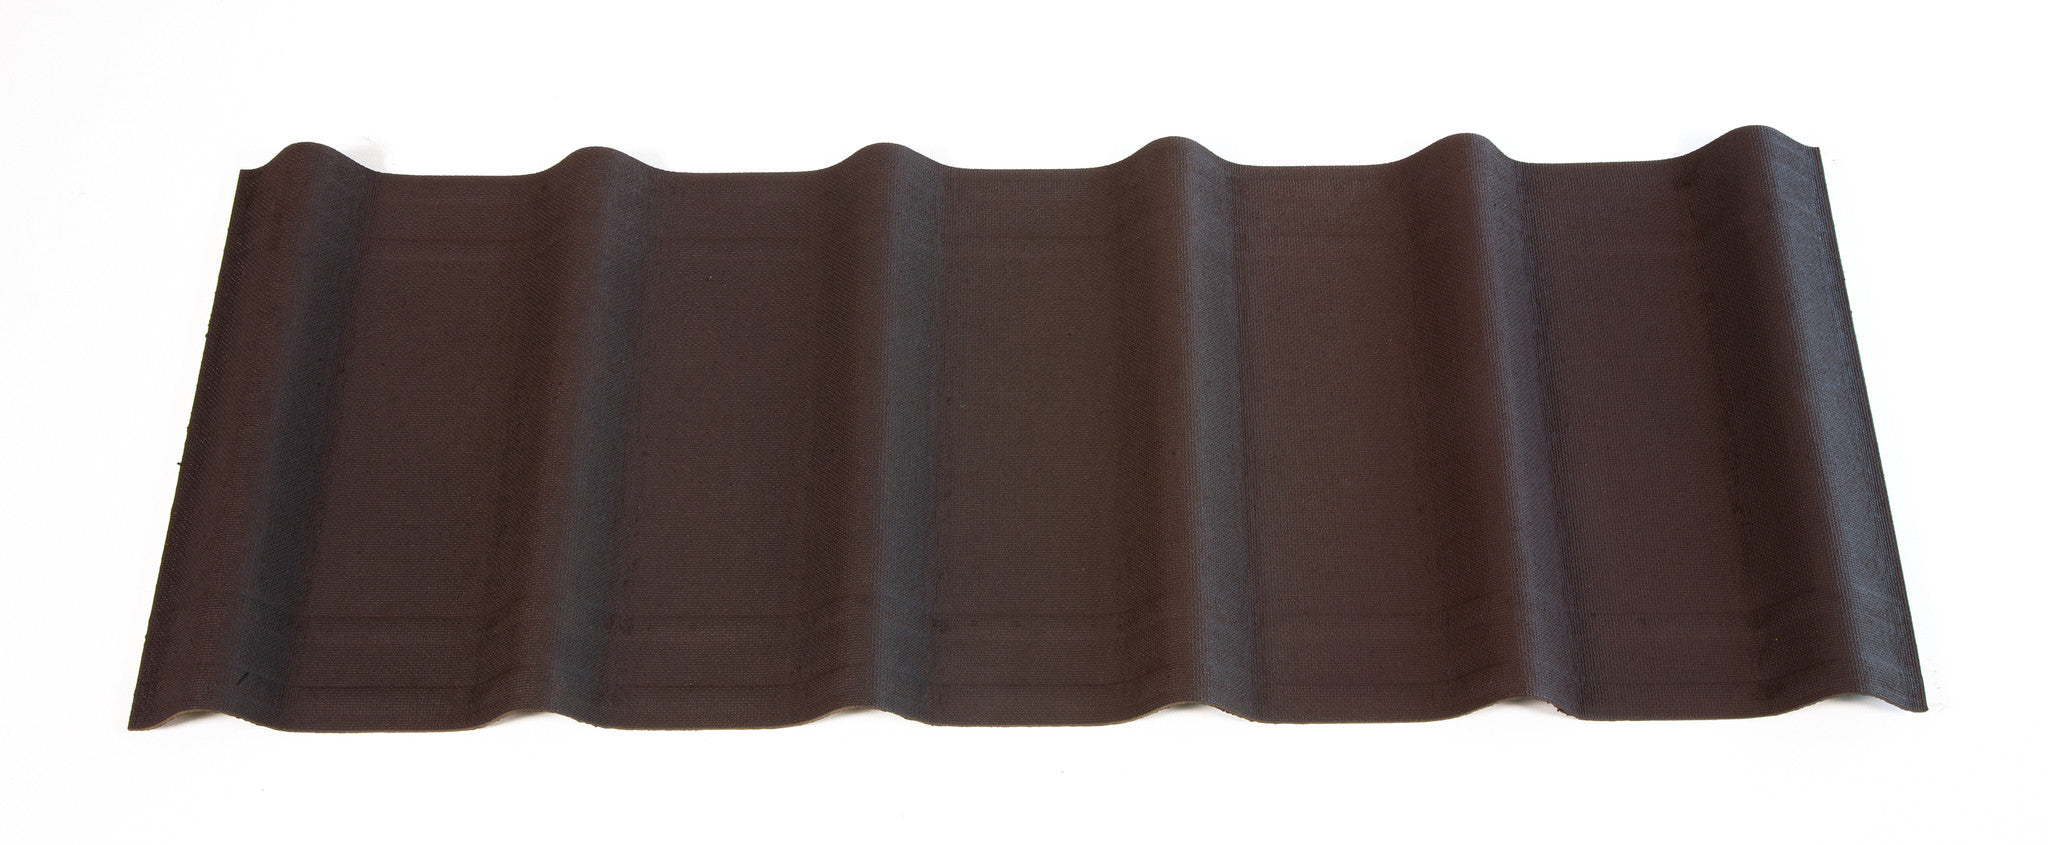 ONDUVILLA Shingles 1 Pack of 10 Shingles - Siena Brown